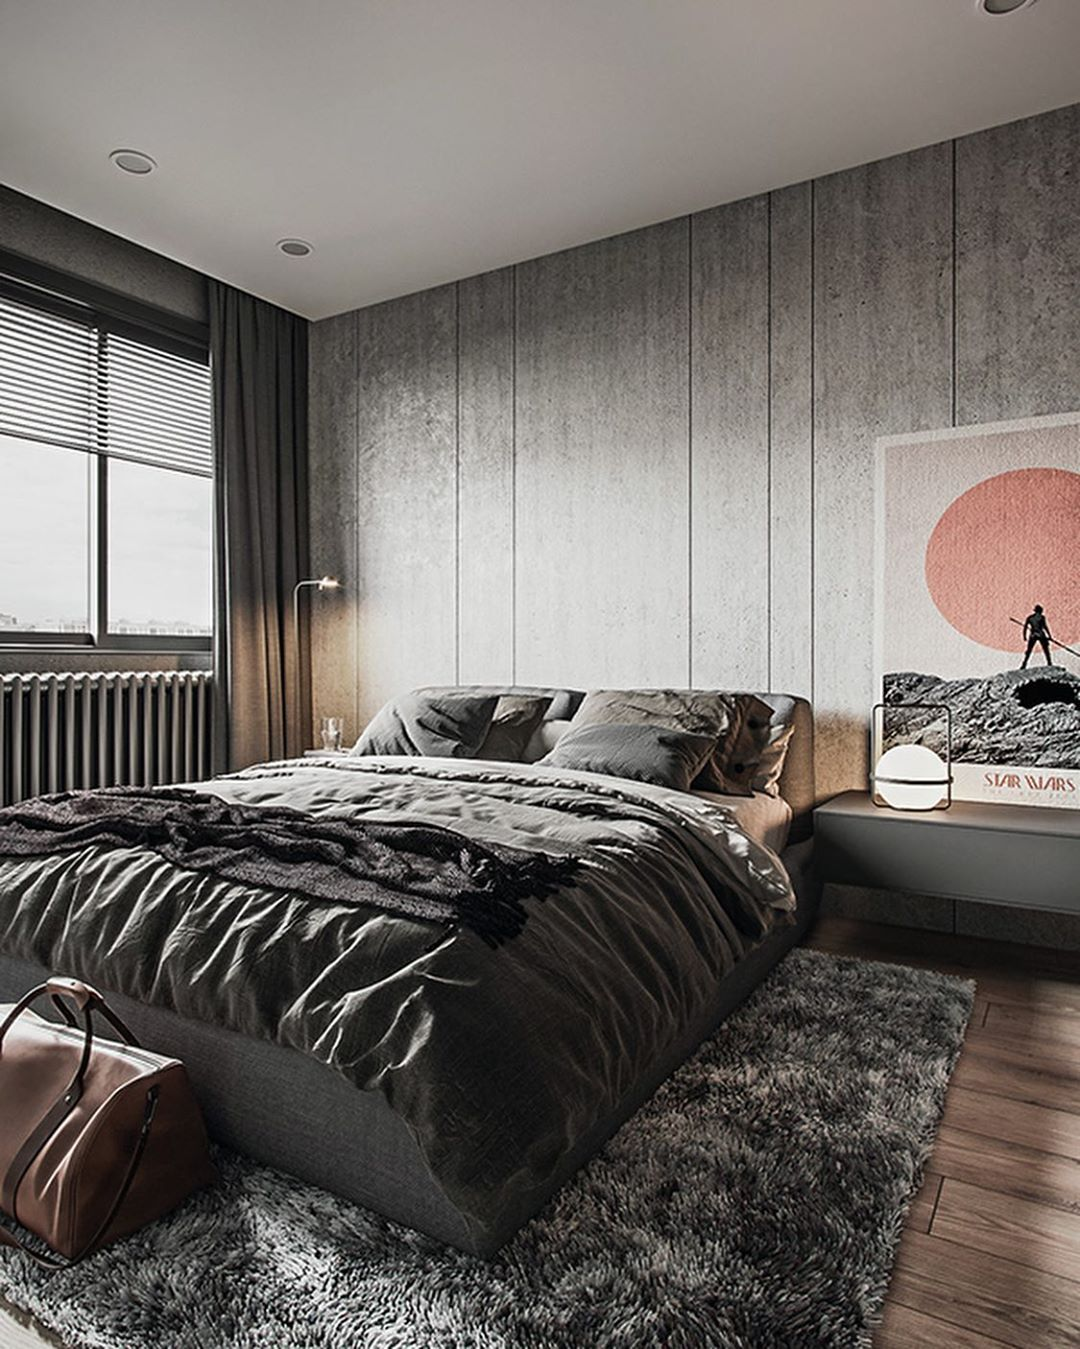 "RENDER LOVERS on Instagram: ""#renderlovers Bedroom goals 🖤 The"